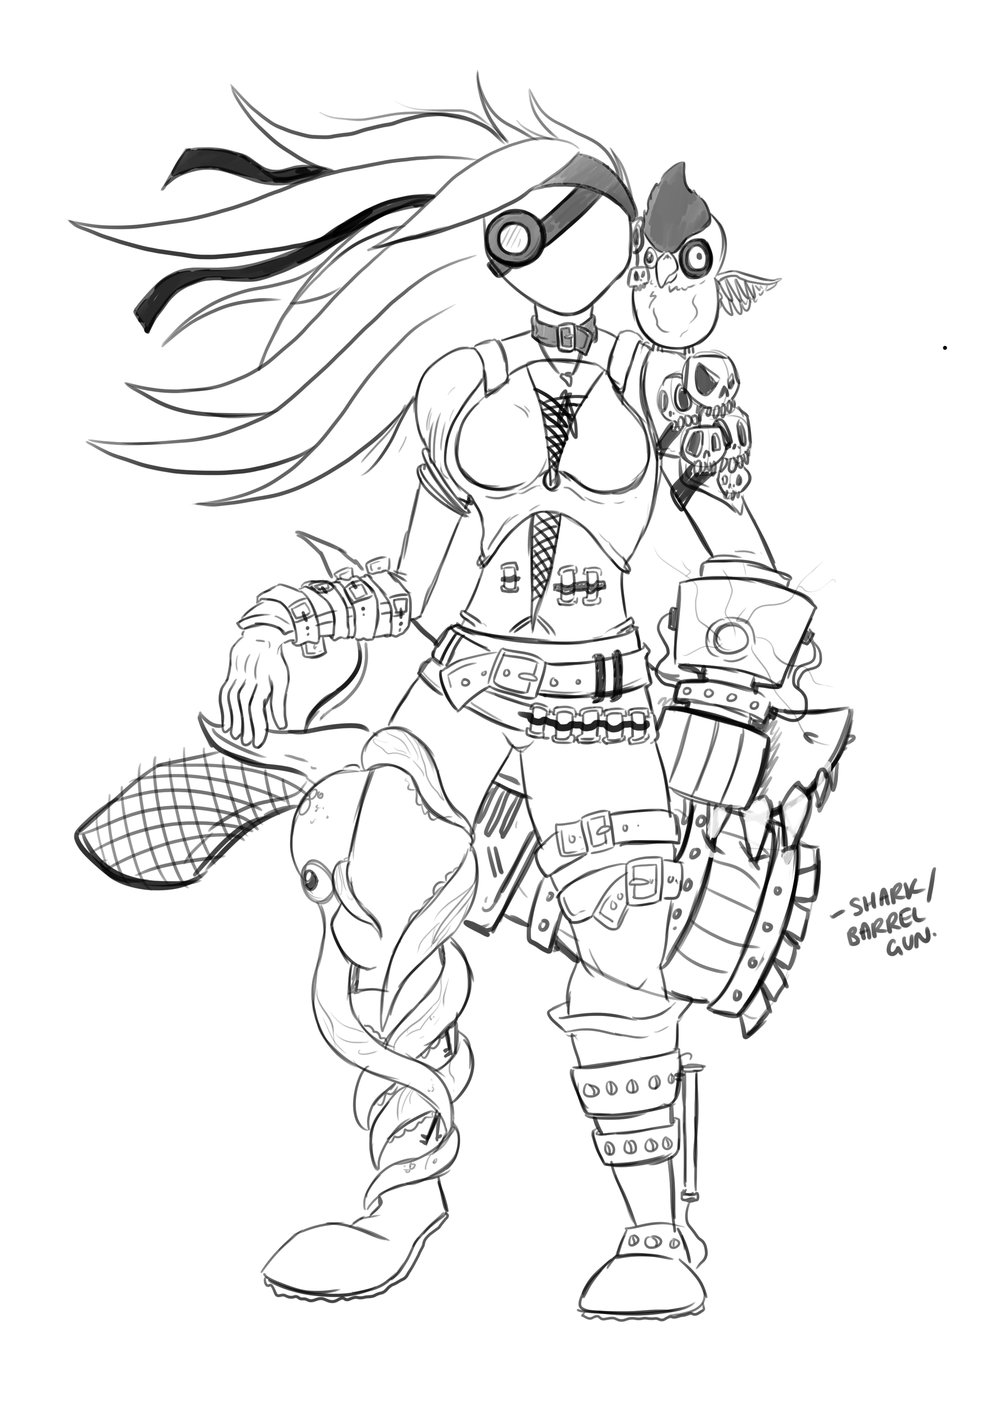 steampunk_pirate_1_rough.jpg